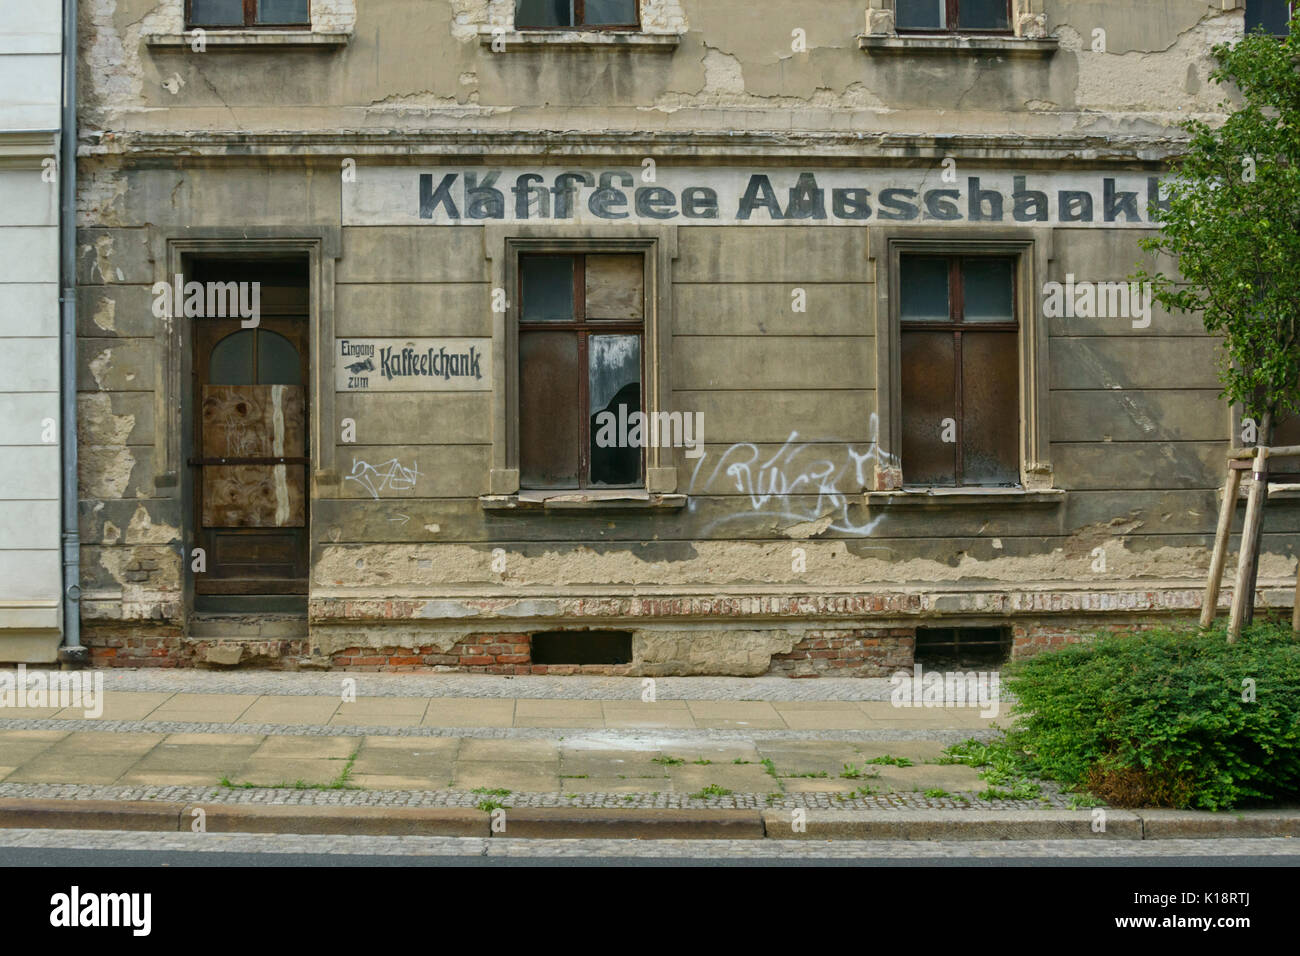 House entrance with old lettering, Görlitz, Germany - Stock Image